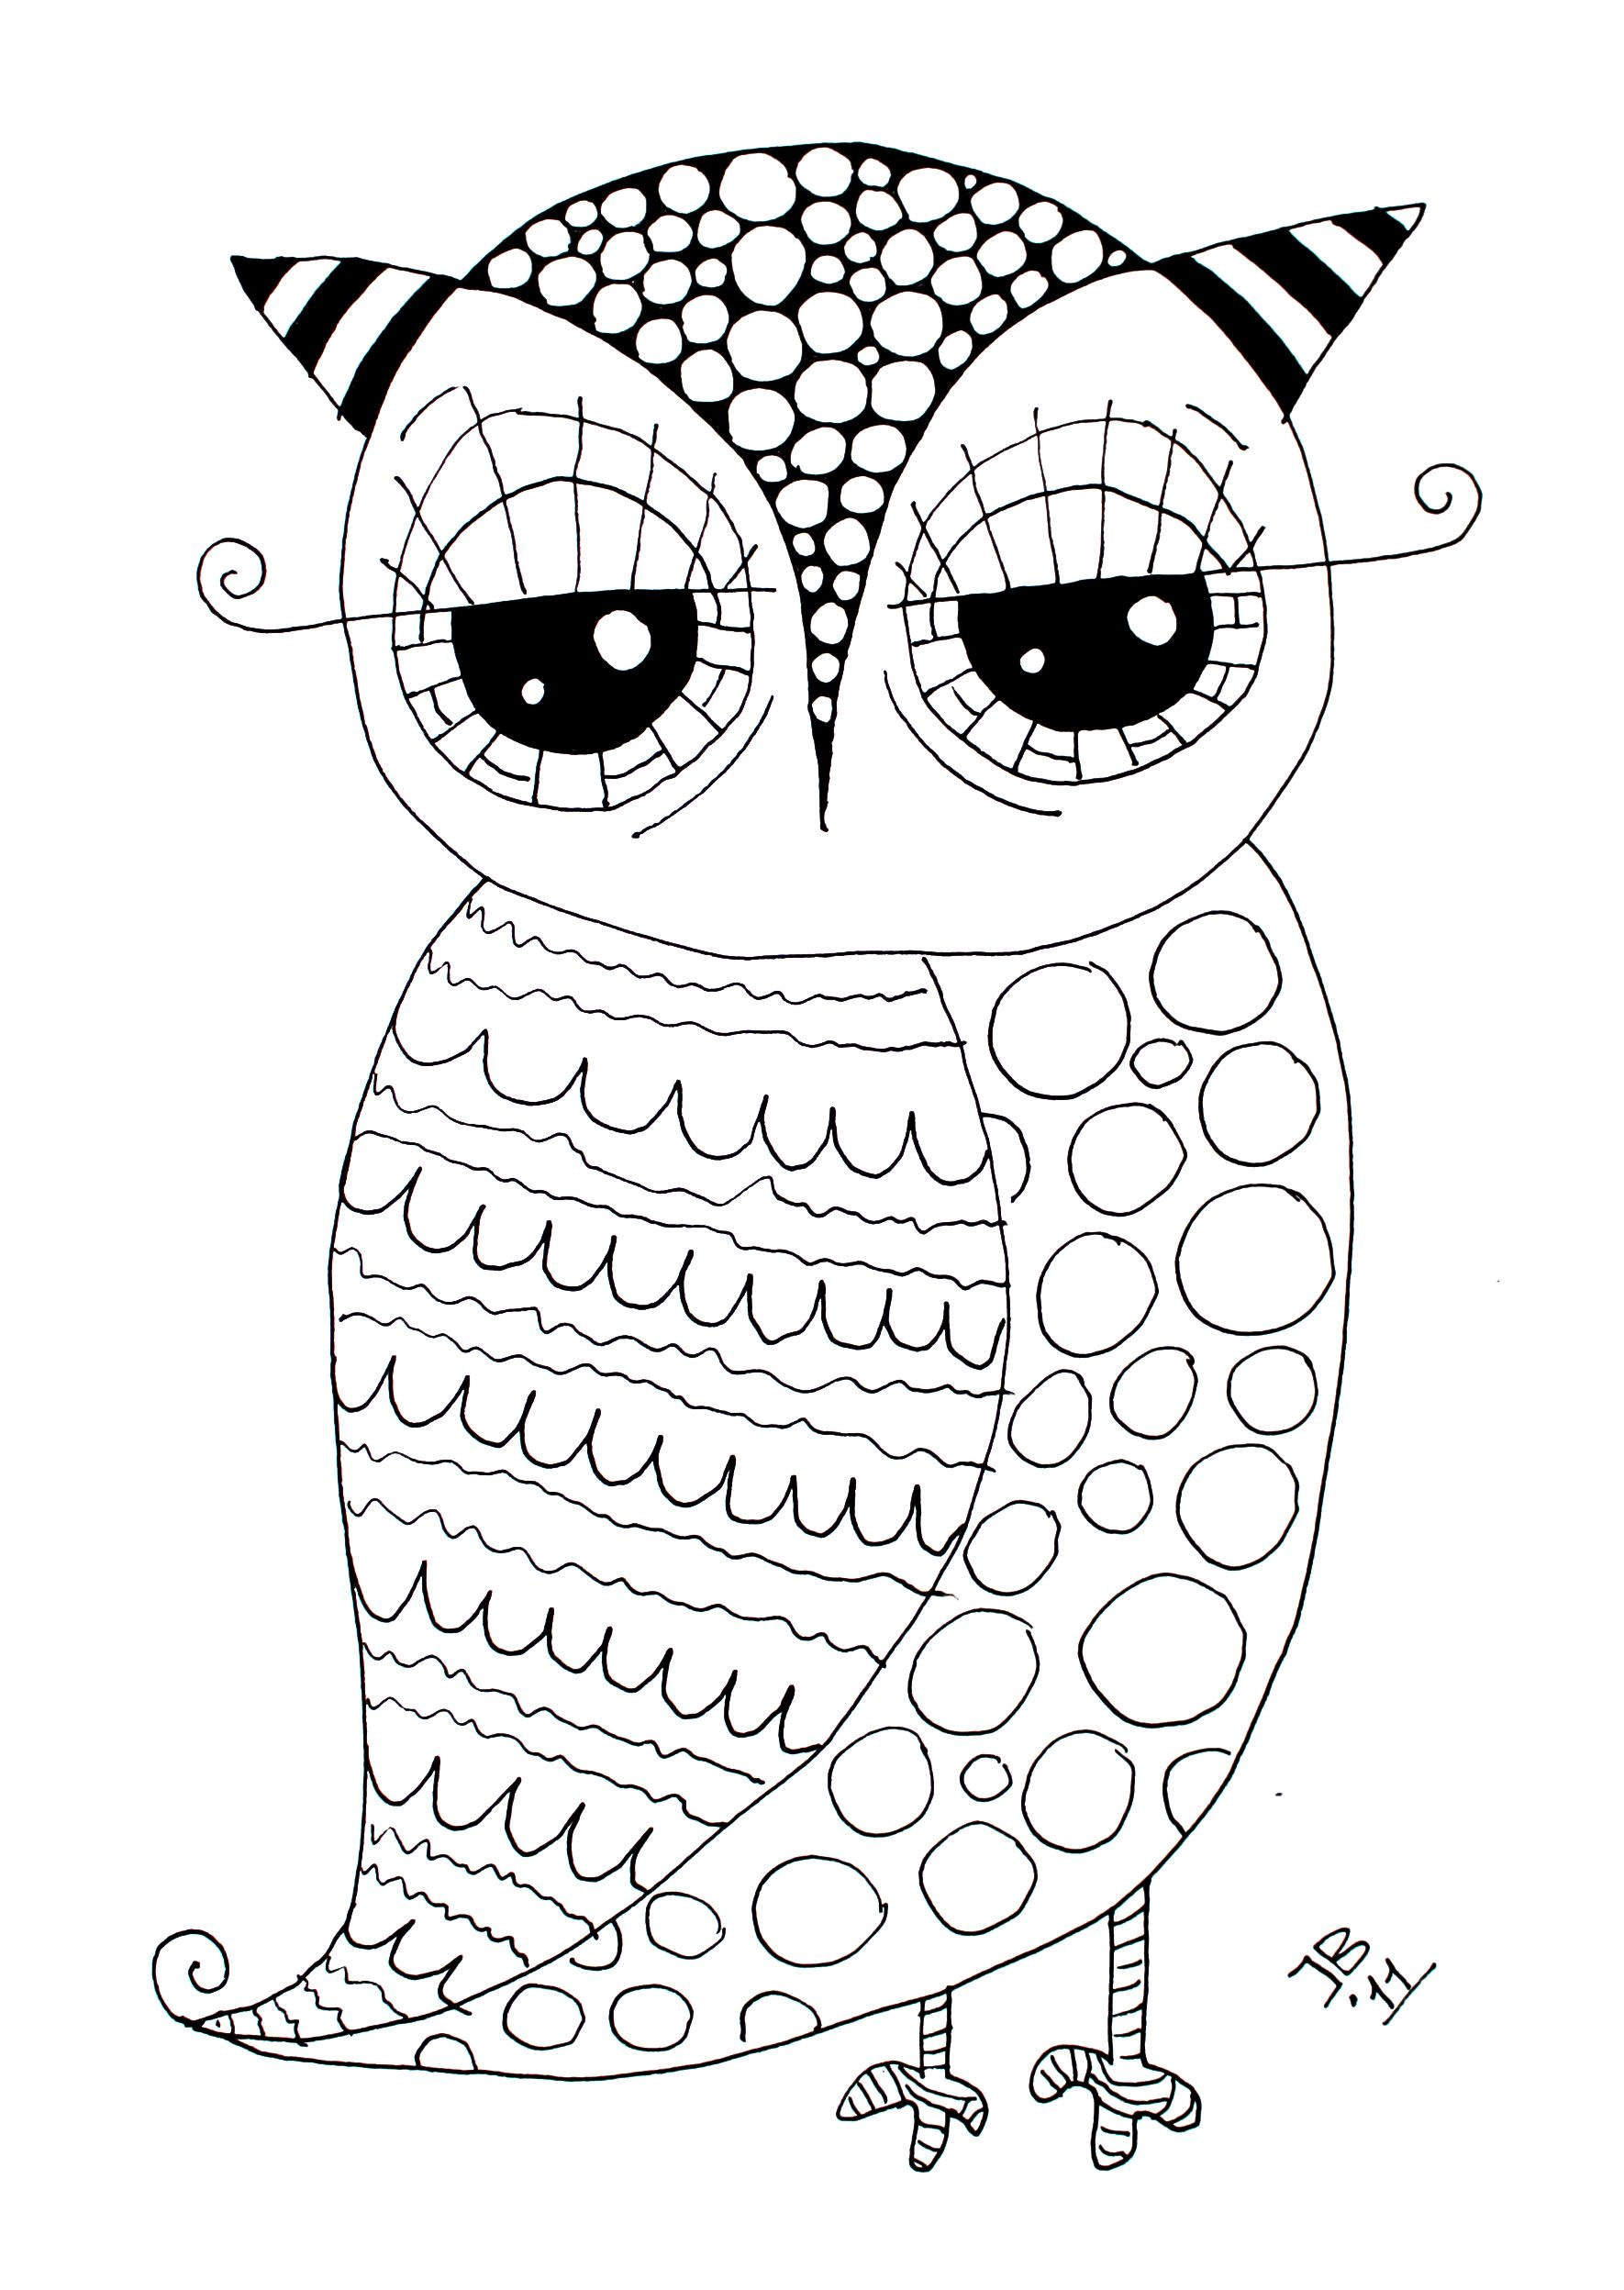 Pin By Tracie Kline Dever On Easy Crafts Owl Coloring Pages Coloring Pages Coloring Books